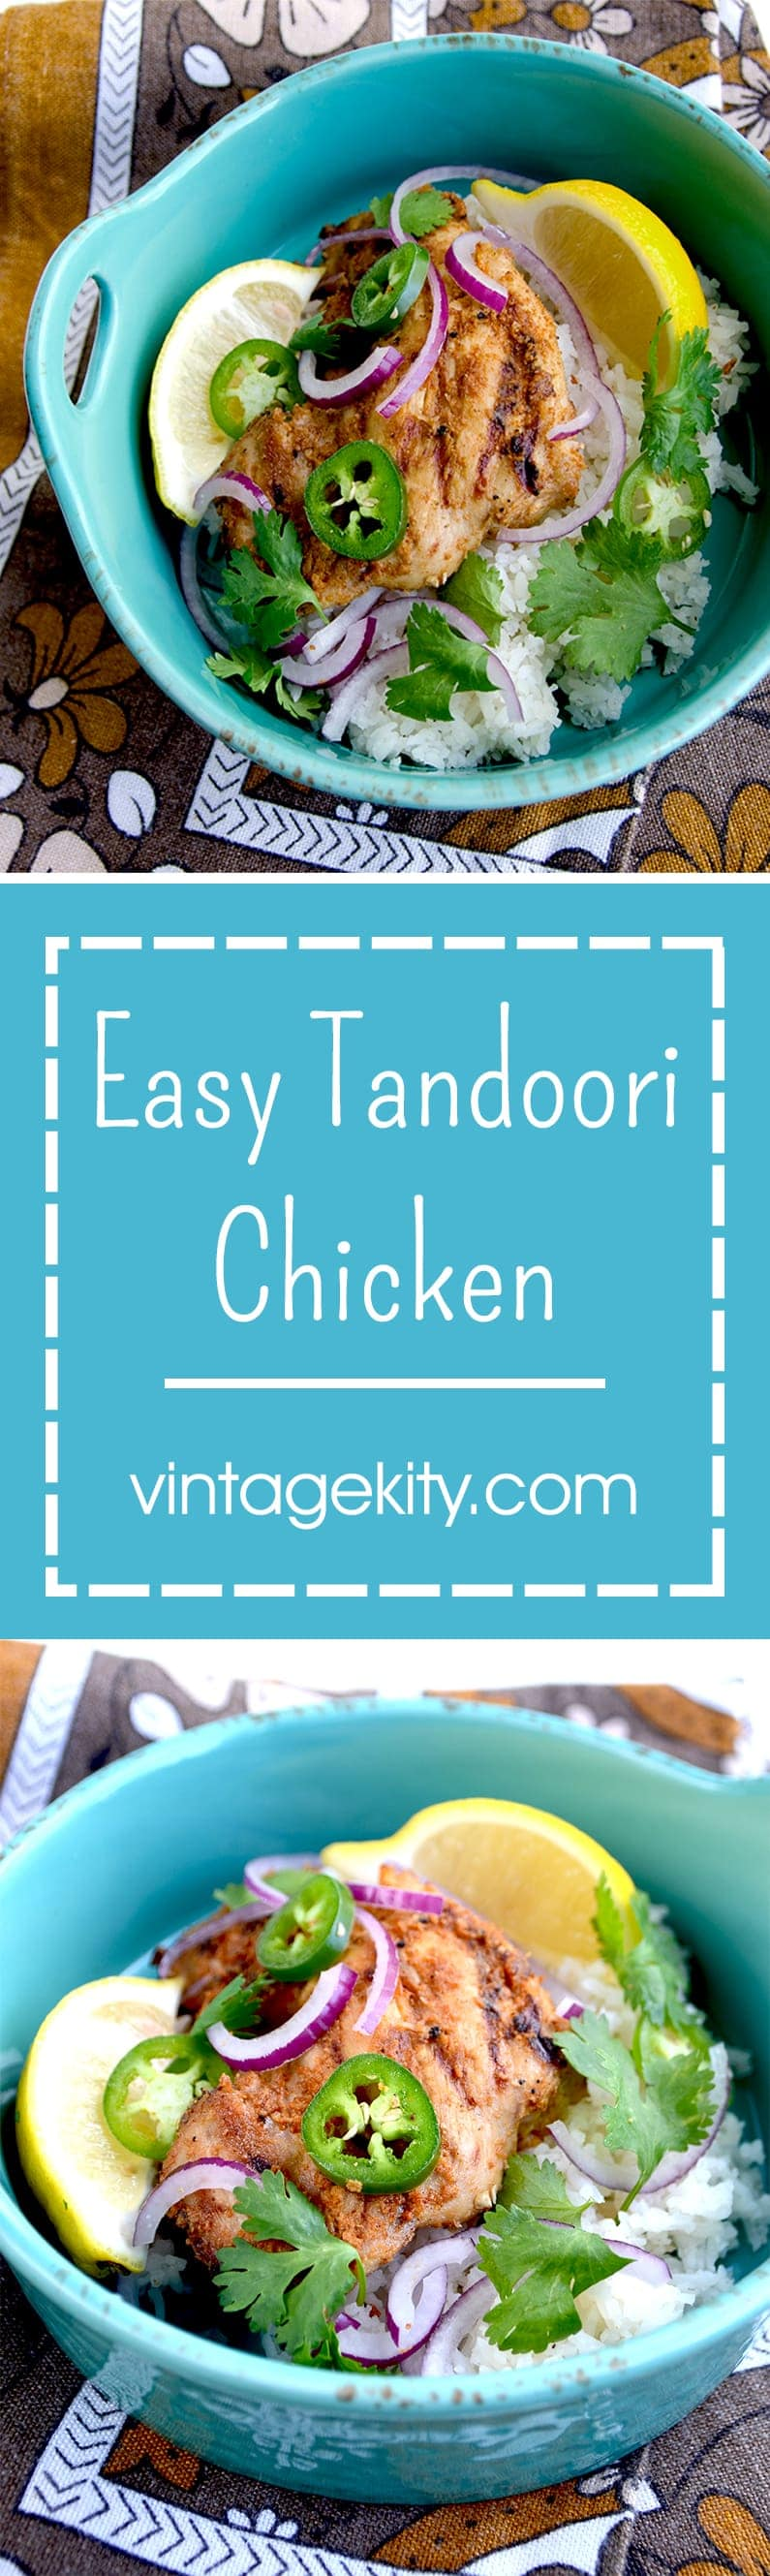 This Easy Tandoori Chicken uses only a handful of ingredients and is a yummy, healthy choice for dinner. | vintagekitty.com